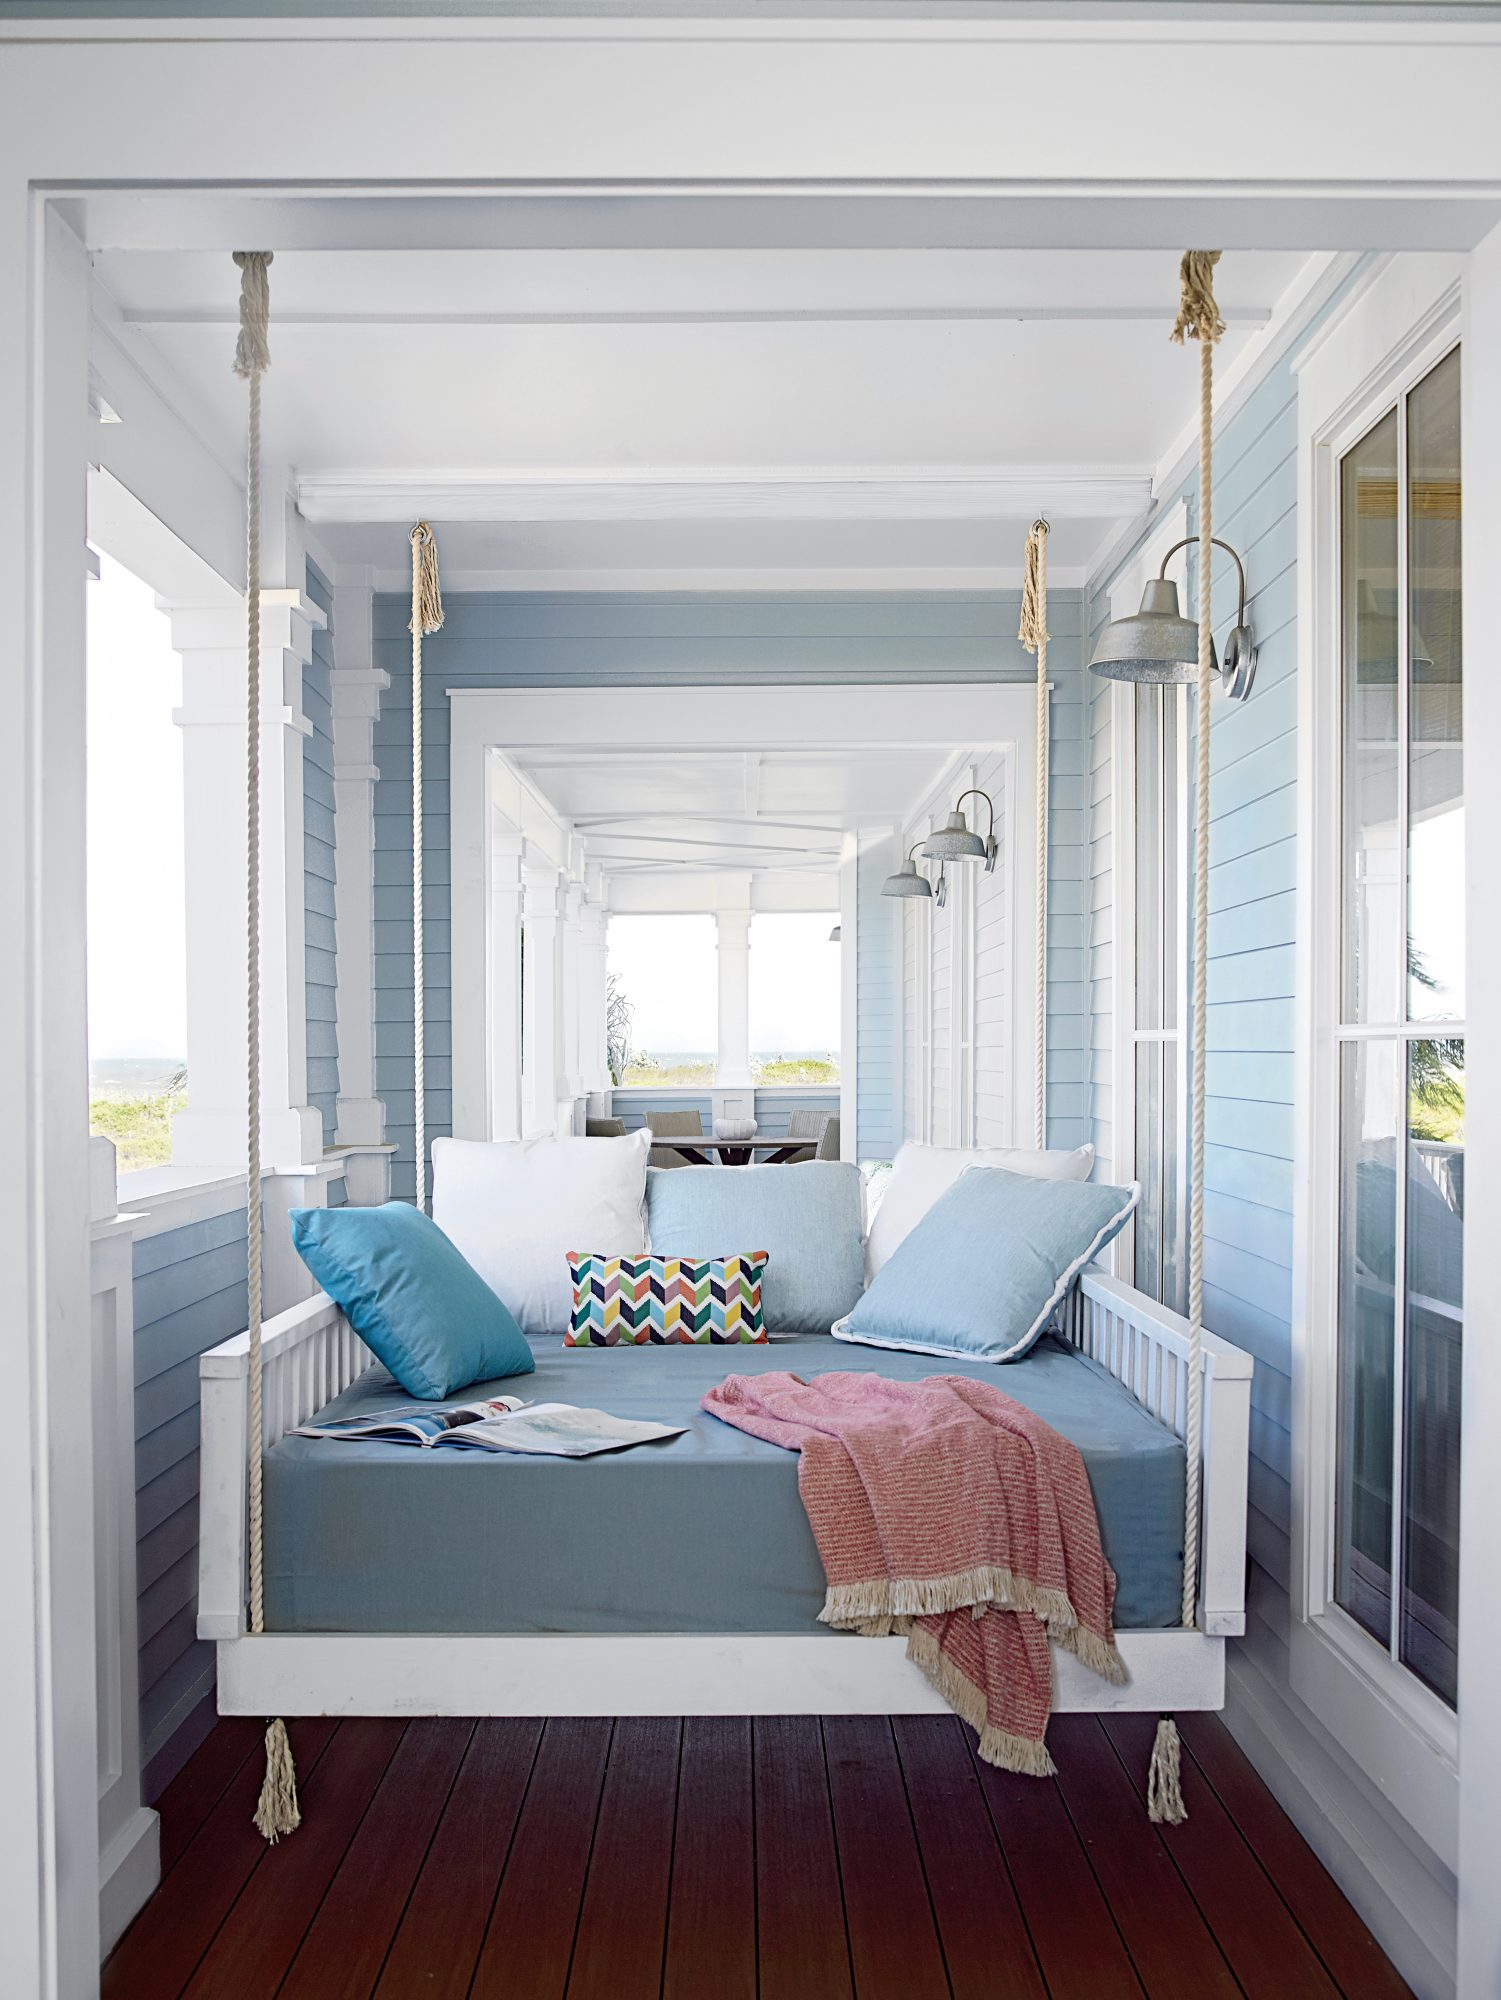 The sleeping porch at our Cinnamon Shore Showhouse in Texas features a custom hanging bed that's ideal for afternoon naps after a day at the beach. Designer Bailey McCarthy—a bedding whiz (she has her own line of sheets, pillows, throws, and more at Biscu